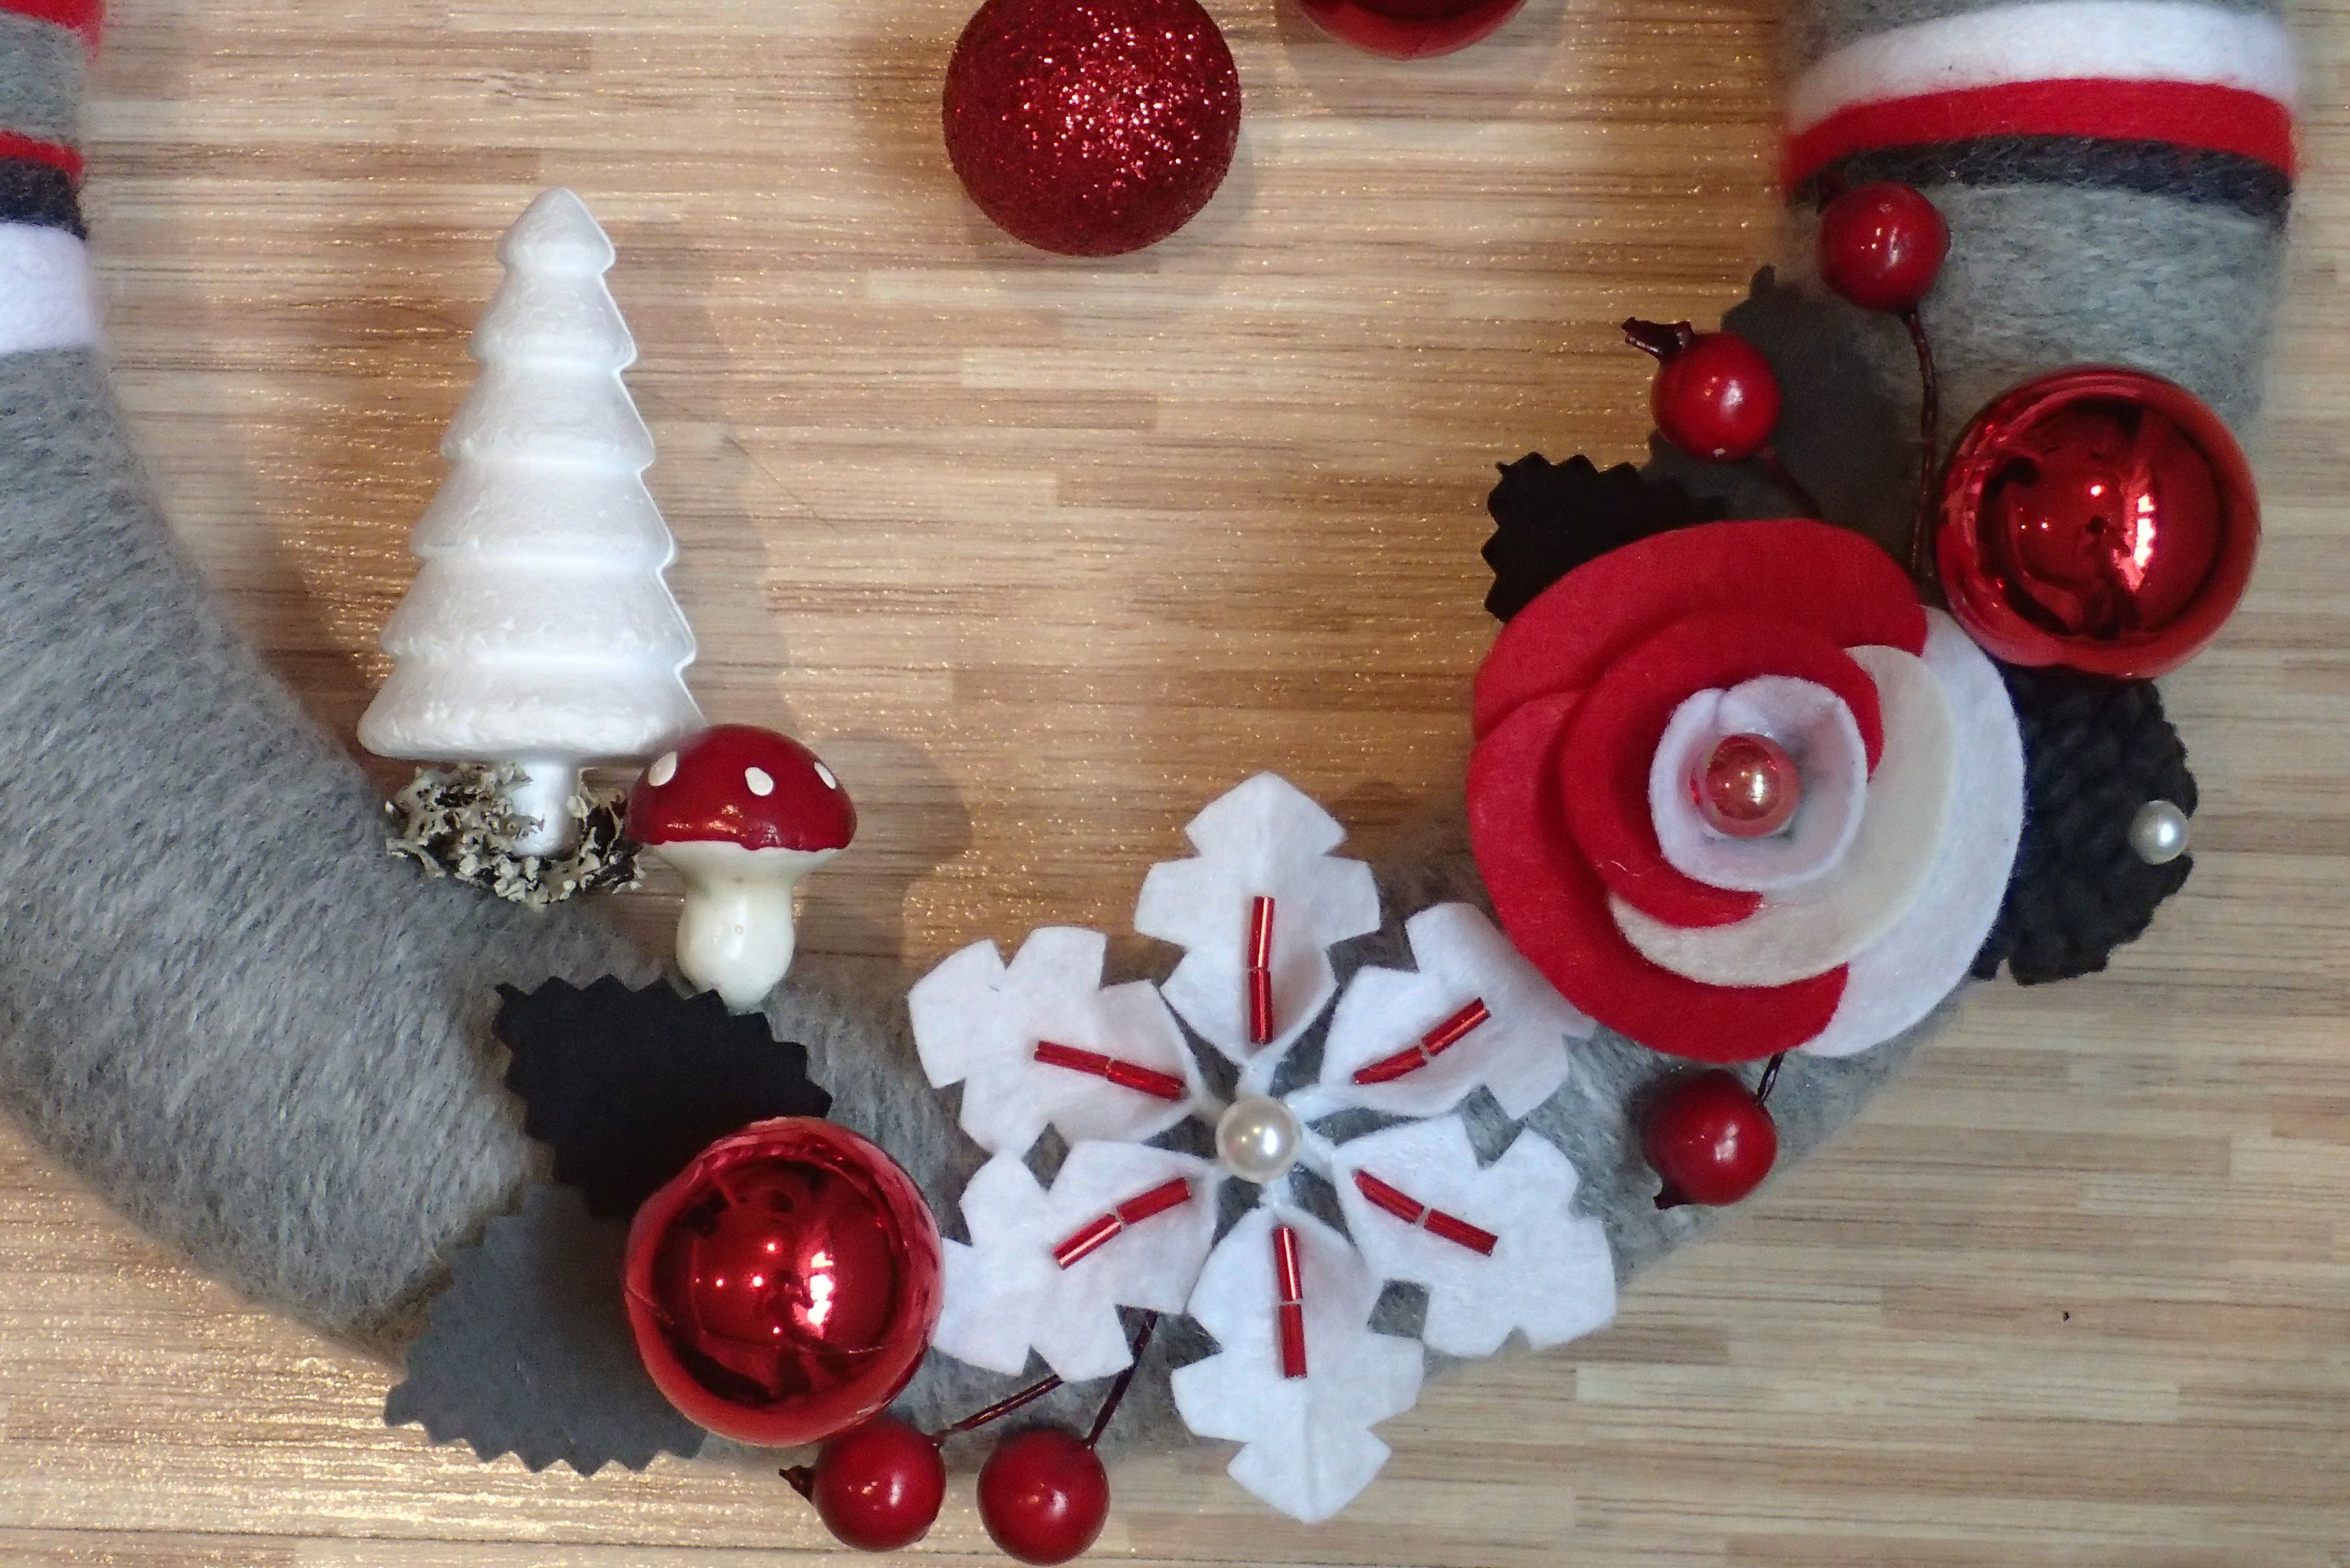 Christmas Gray Red White Yarn Felt Wreath with Red Rose, Snowflake, Christmas Tree and Toadstool Detail - https://www.facebook.com/Luksdecor